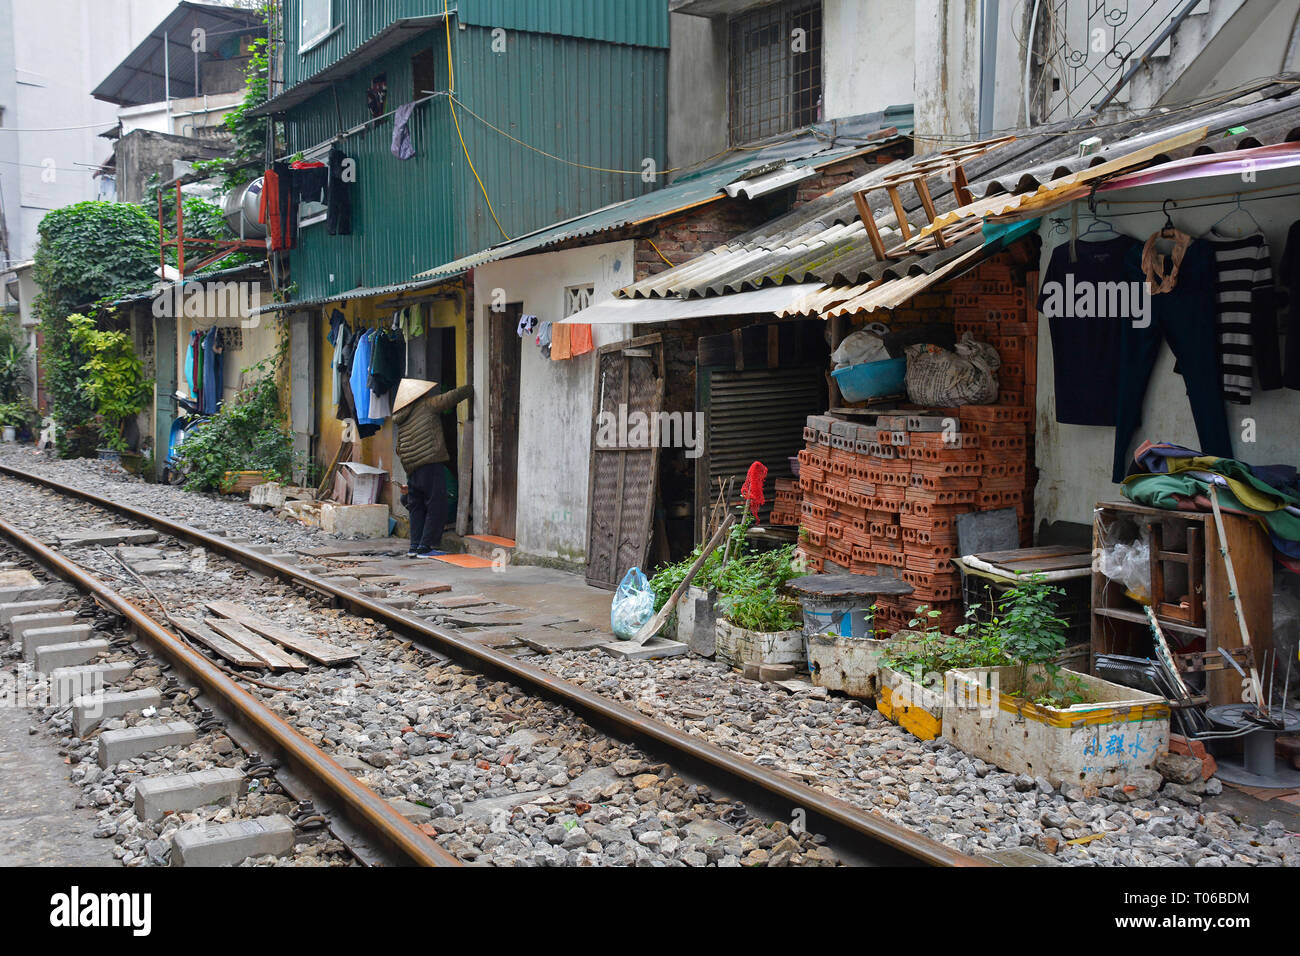 Hanoi, Vietnam - 14th December 2017. Houses on a residential street which is often referred to as Train Street in central Hanoi which has grown up aro Stock Photo